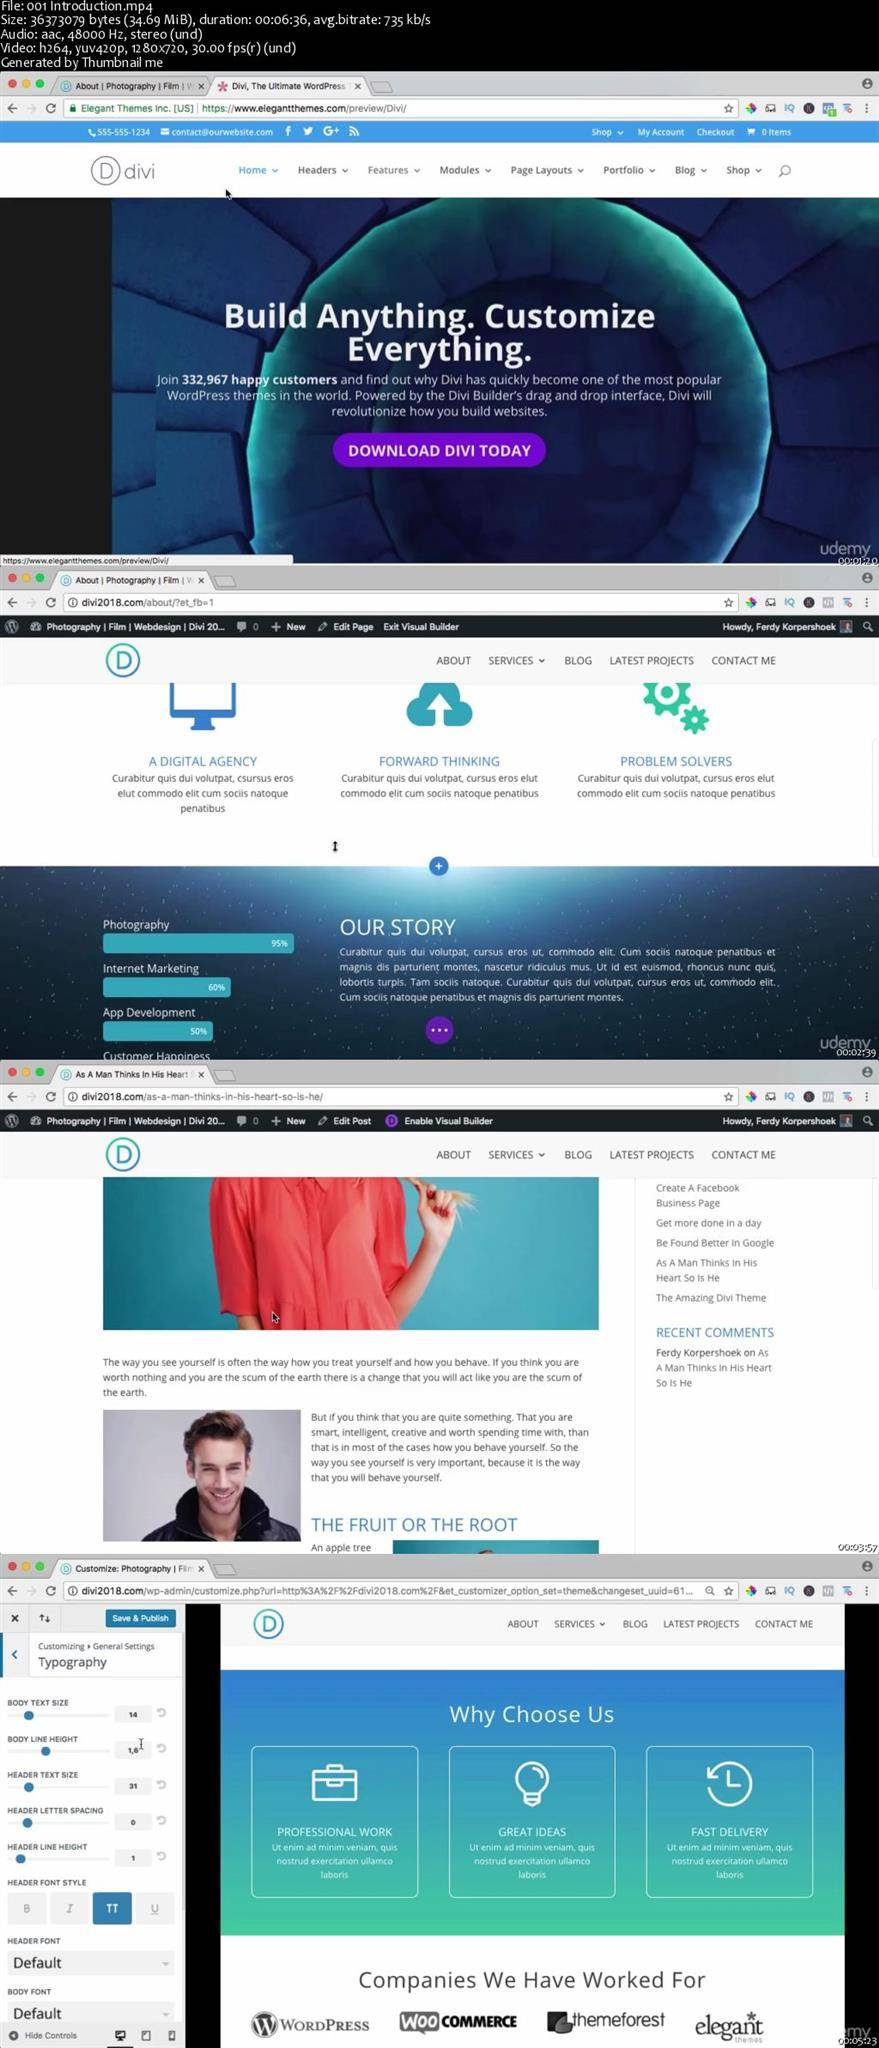 How To Make A Wordpress Website With The Divi Theme Avaxhome